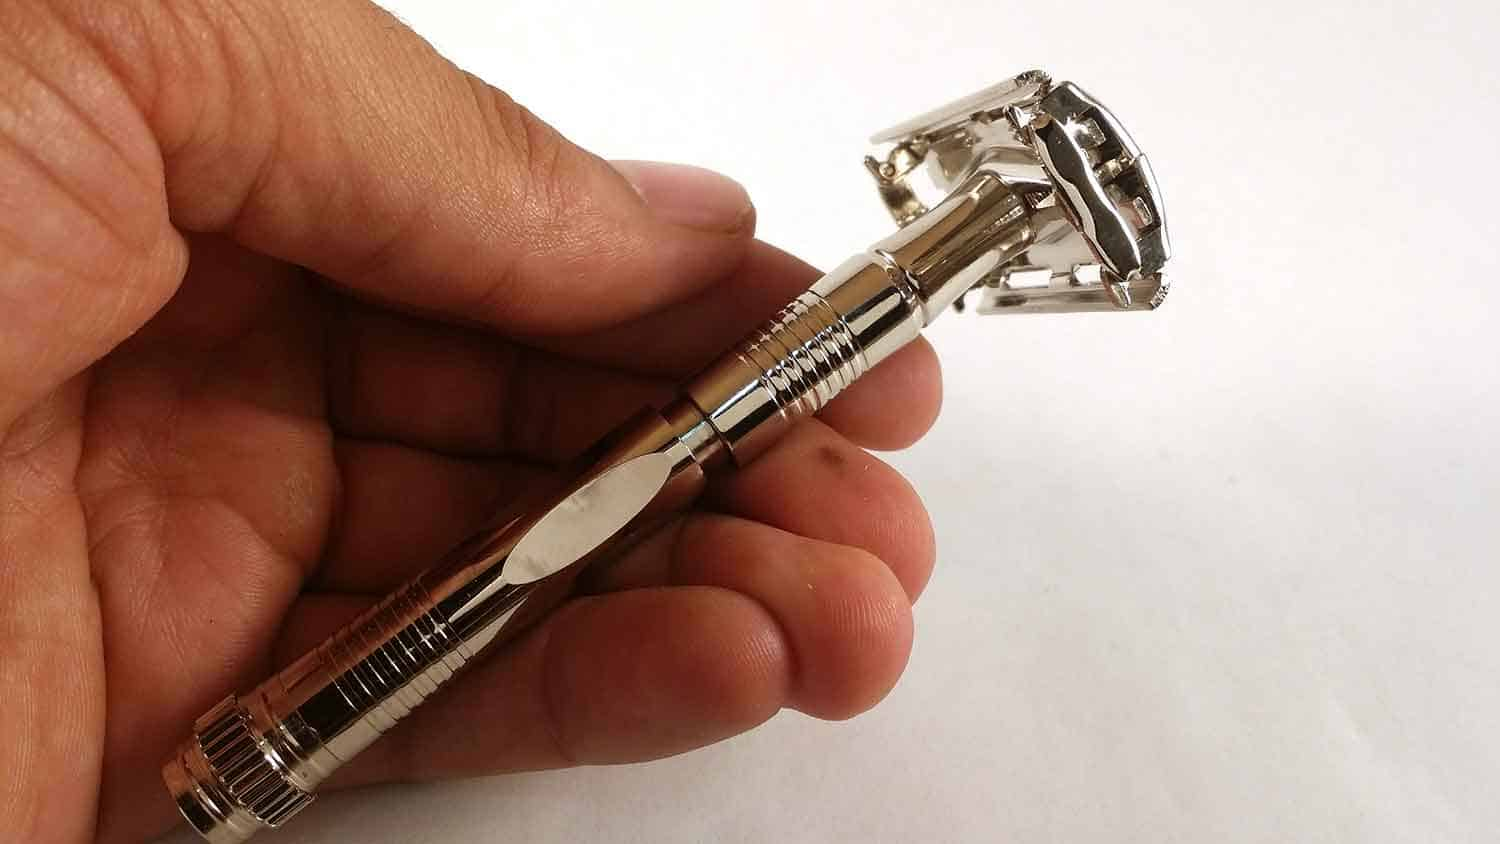 Parker 90R Long Handle Butterfly Open Double Edge Safety Razor